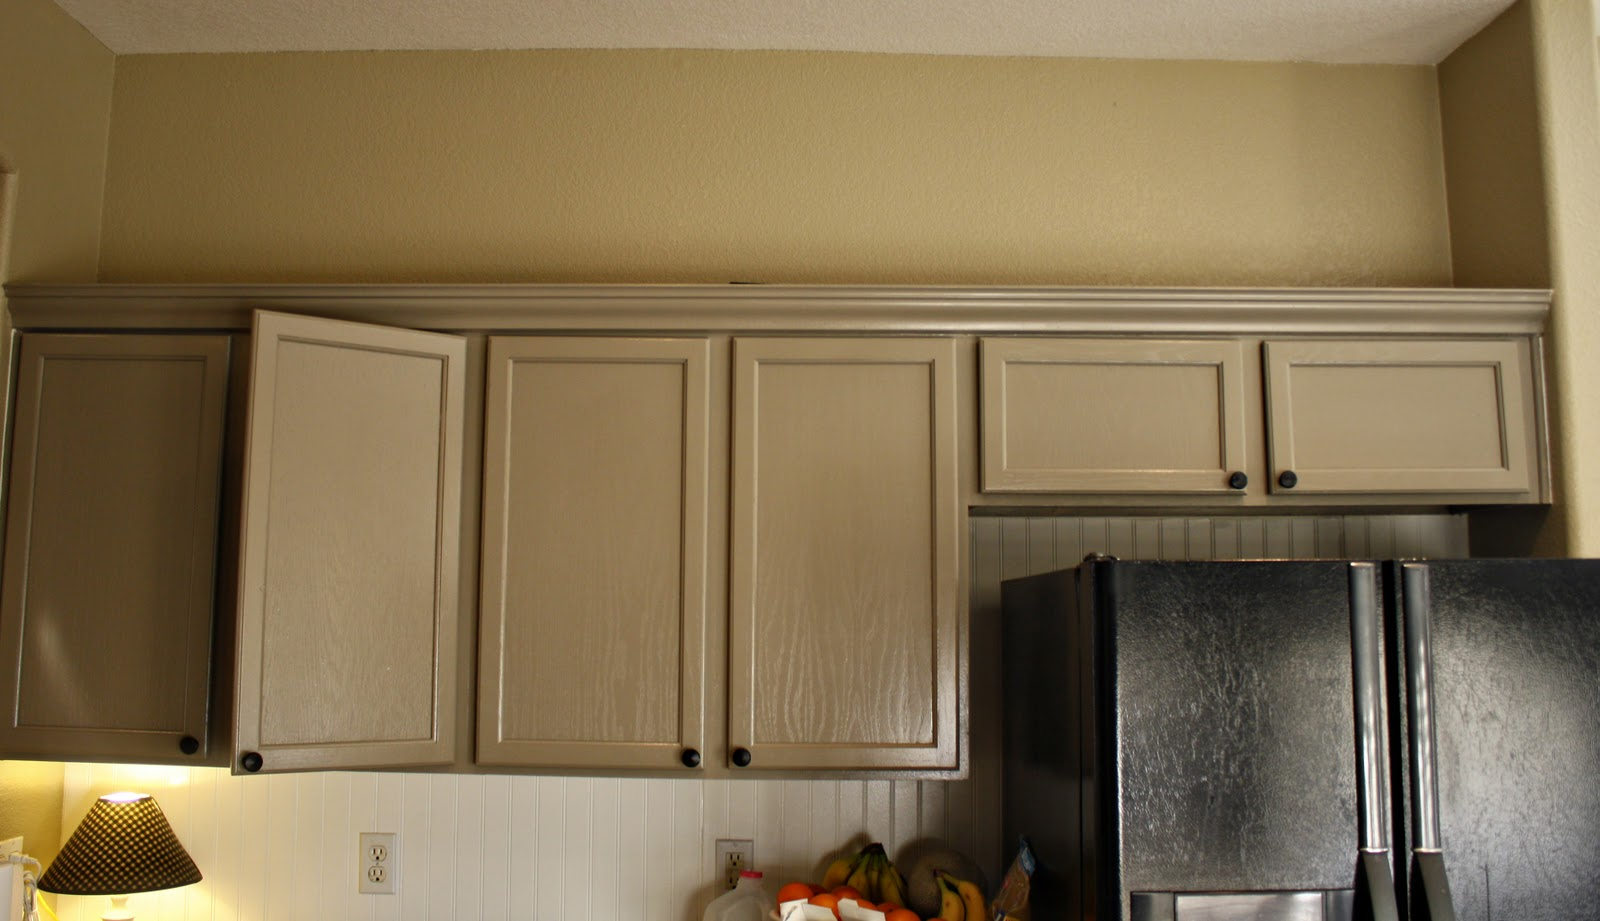 Decorative Plates above Kitchen Cabinets